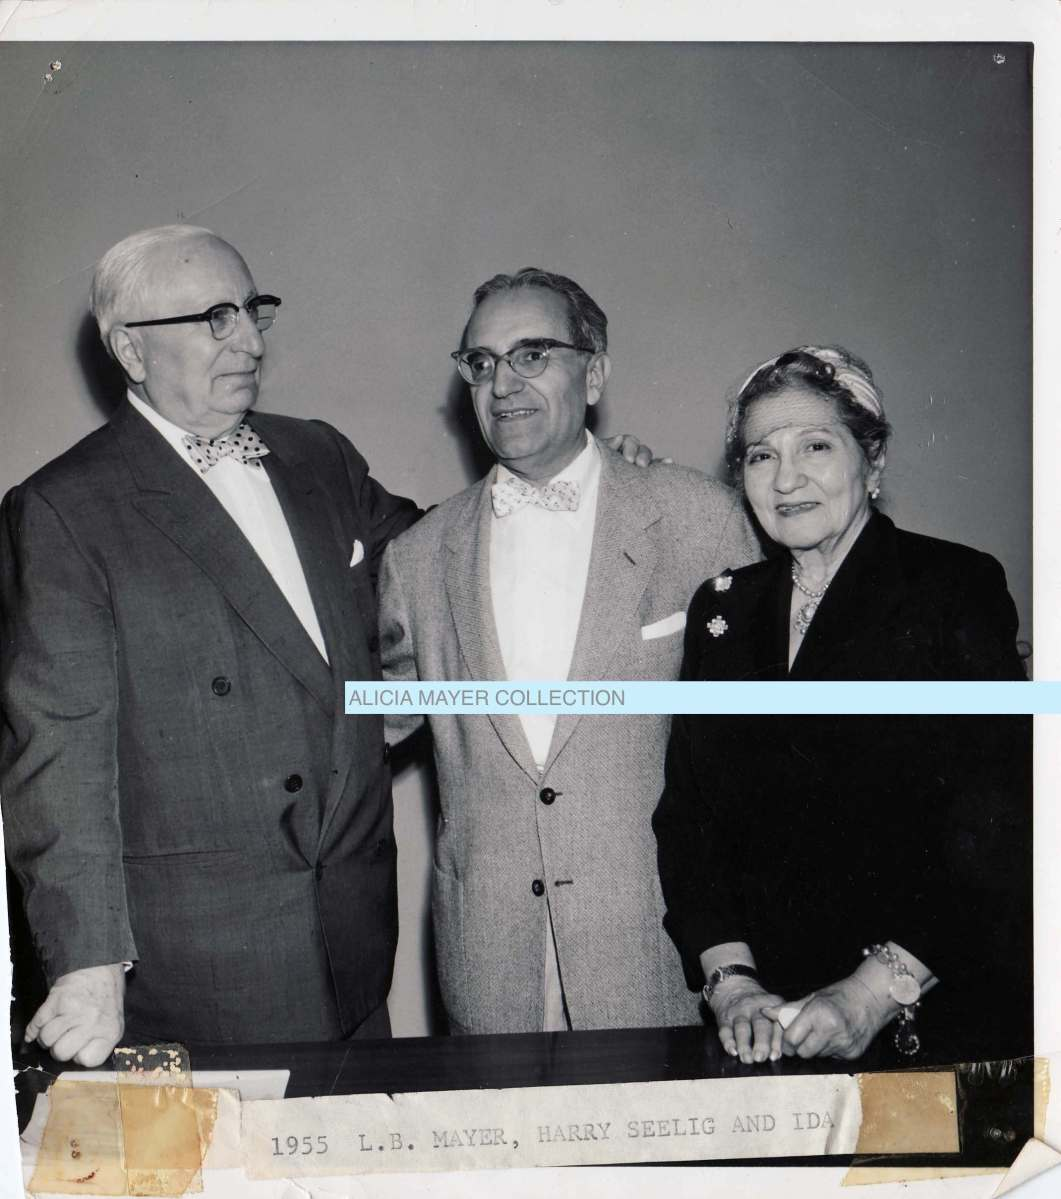 Louis B. Mayer and the simple photo that tells the story of a rich civic life that is all but gone today